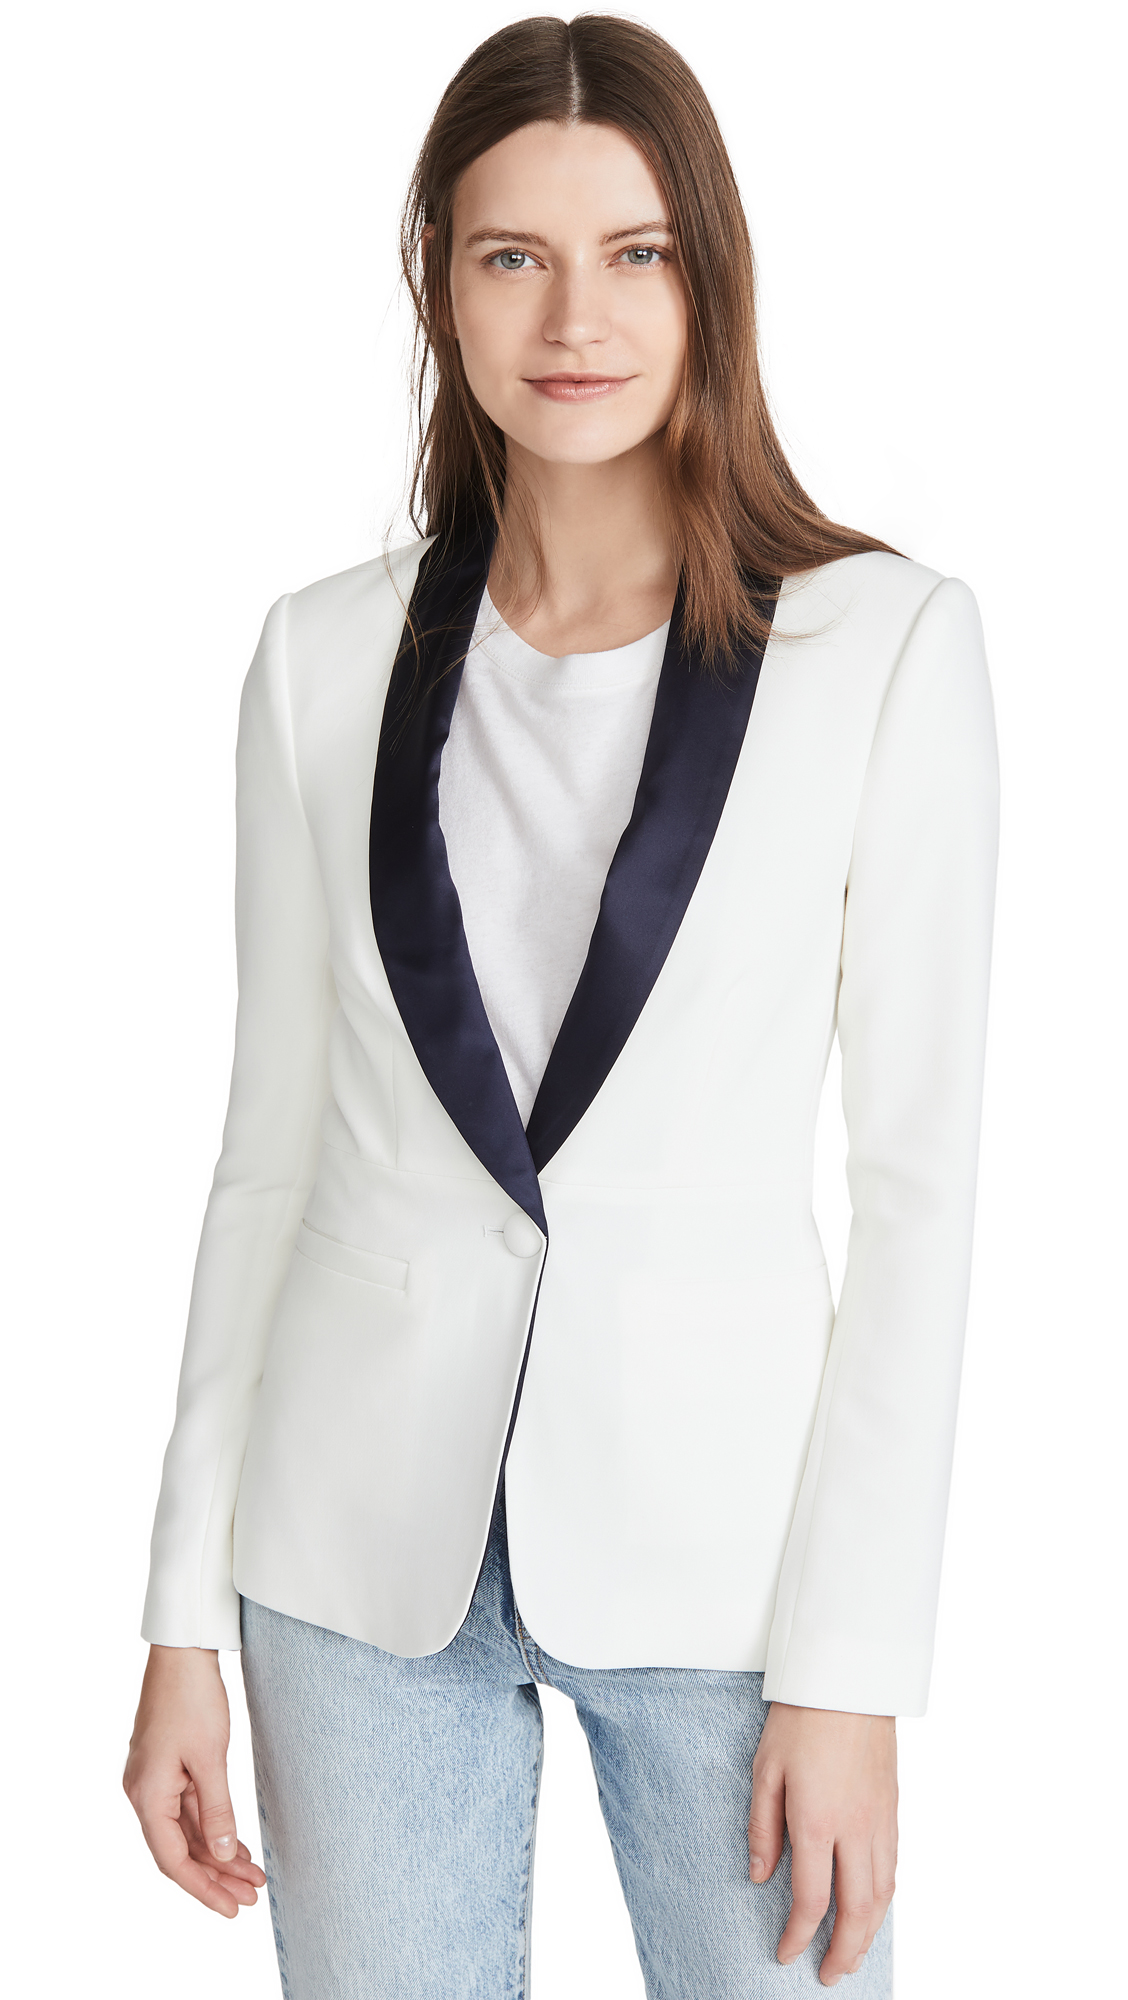 Buy L'AGENCE Smoking Jacket with Contrast Lapel online beautiful L'AGENCE Jackets, Coats, Coats